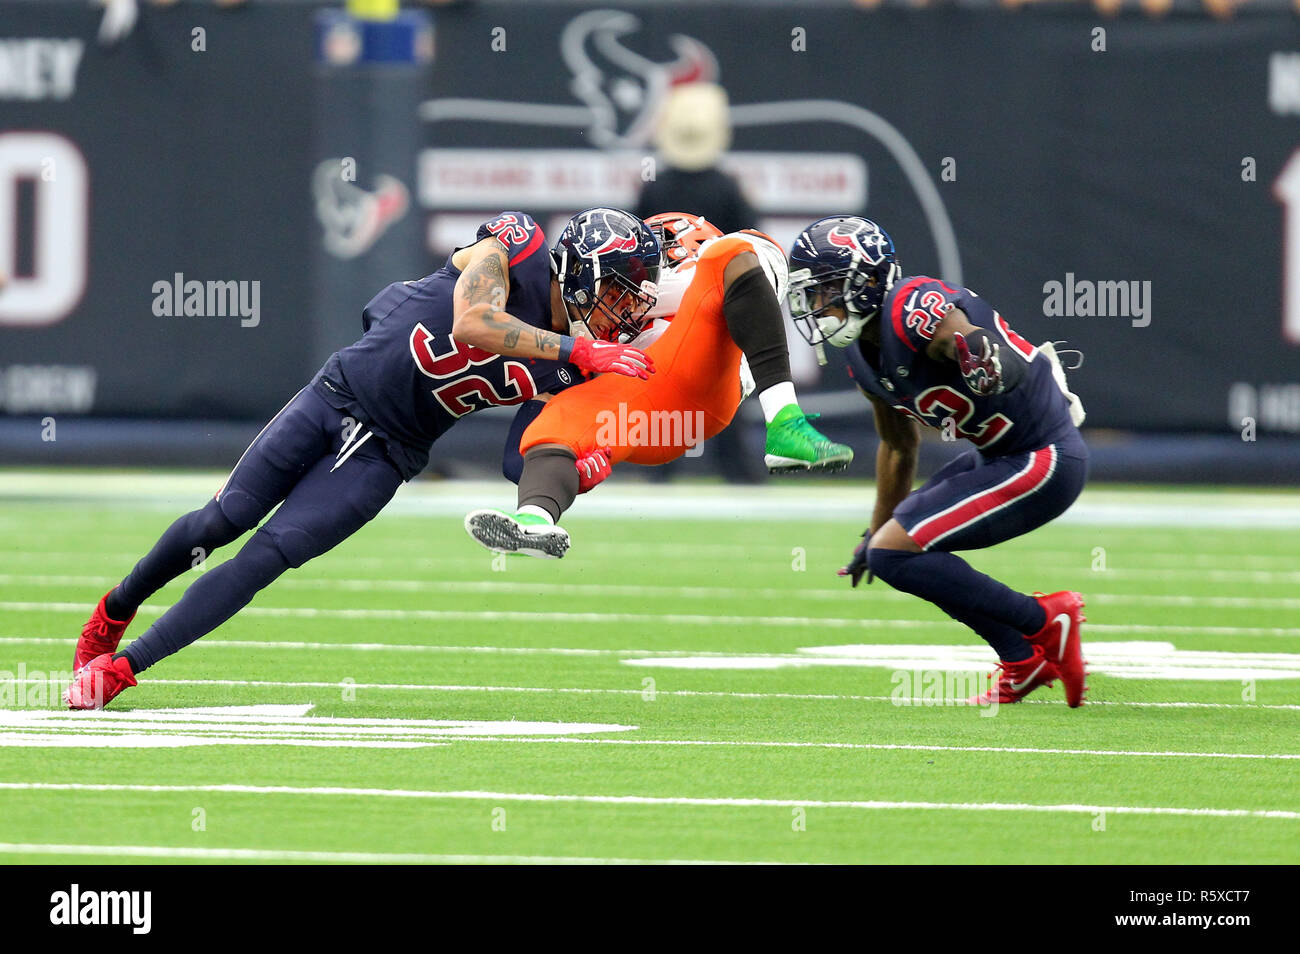 Houston, Texas, USA. 2nd Dec, 2018. Houston Texans defensive back Tyrann Mathieu (32, left) and defensive back Aaron Colvin (22) combine to tackle Cleveland Browns running back Duke Johnson (29) during the fourth quarter of the NFL regular season game between the Houston Texans and the Cleveland Browns at NRG Stadium in Houston, TX on December 2, 2018. Credit: Erik Williams/ZUMA Wire/Alamy Live News - Stock Image